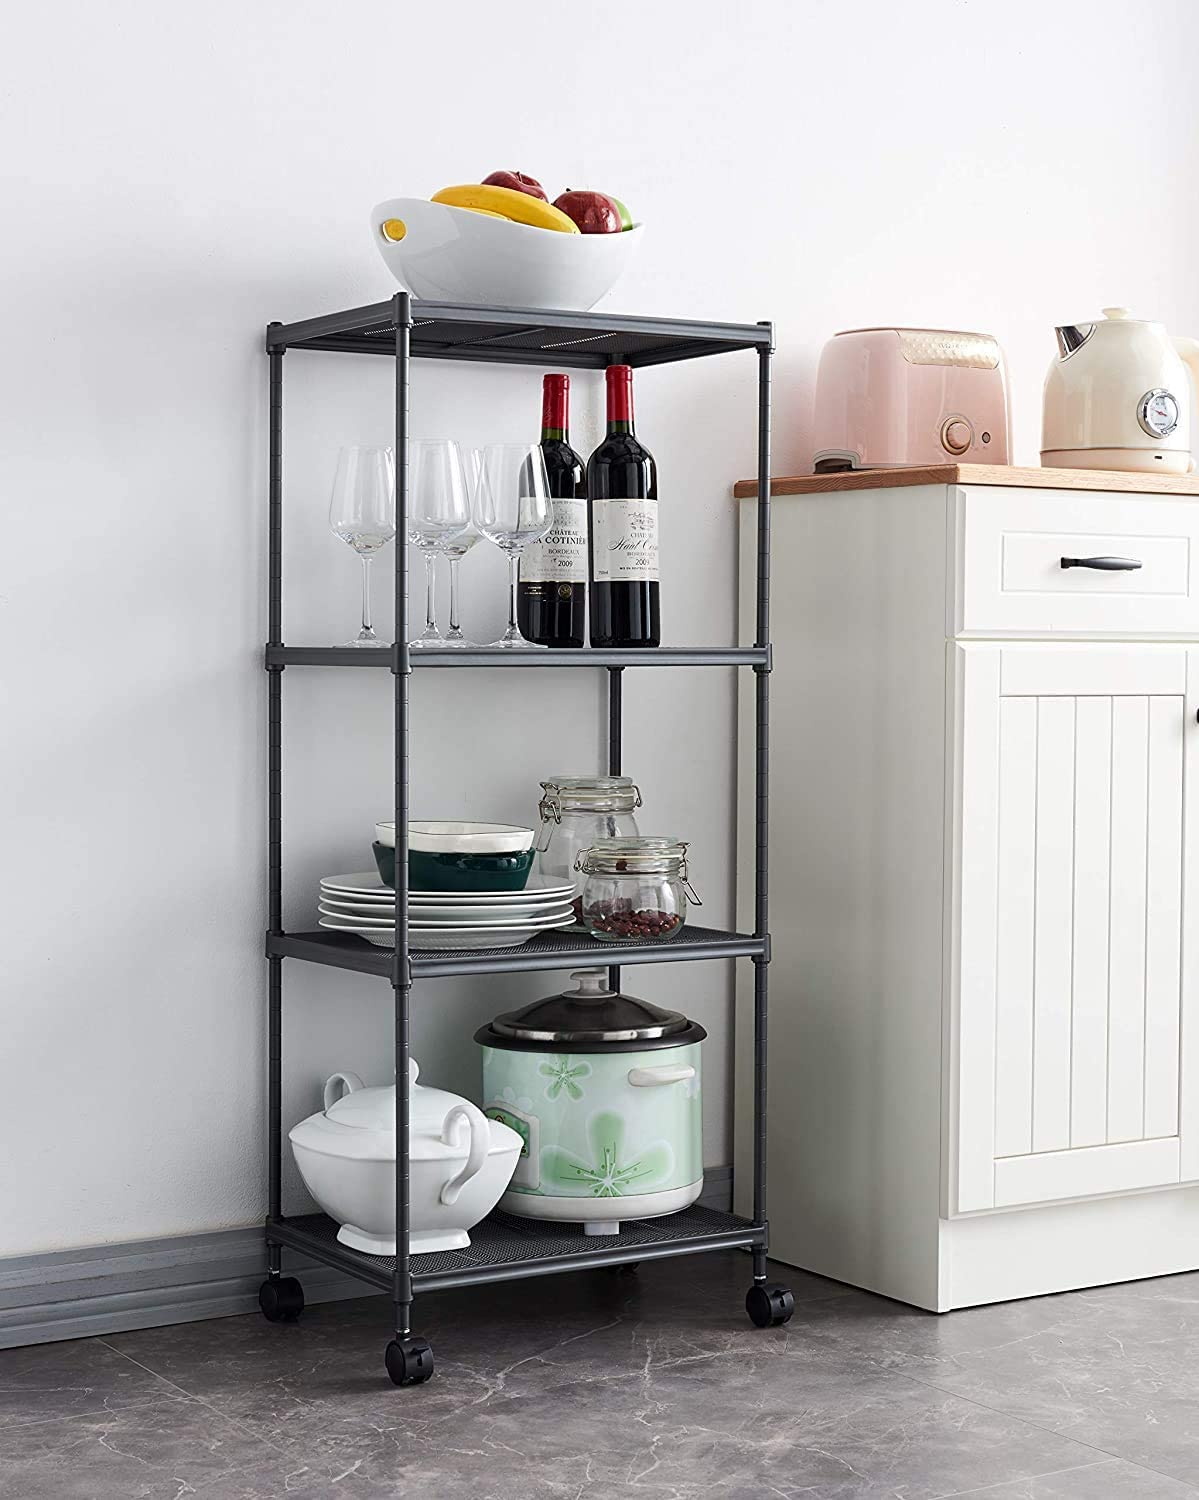 Commercial Grade Heavy Duty Utility Sturdy Organizer Rack for Home Kitchen Restaurant Office Dormitory Garage Mini Storage Shelves Gray Small Metal Shelf Wire Shelving Unit with Wheels